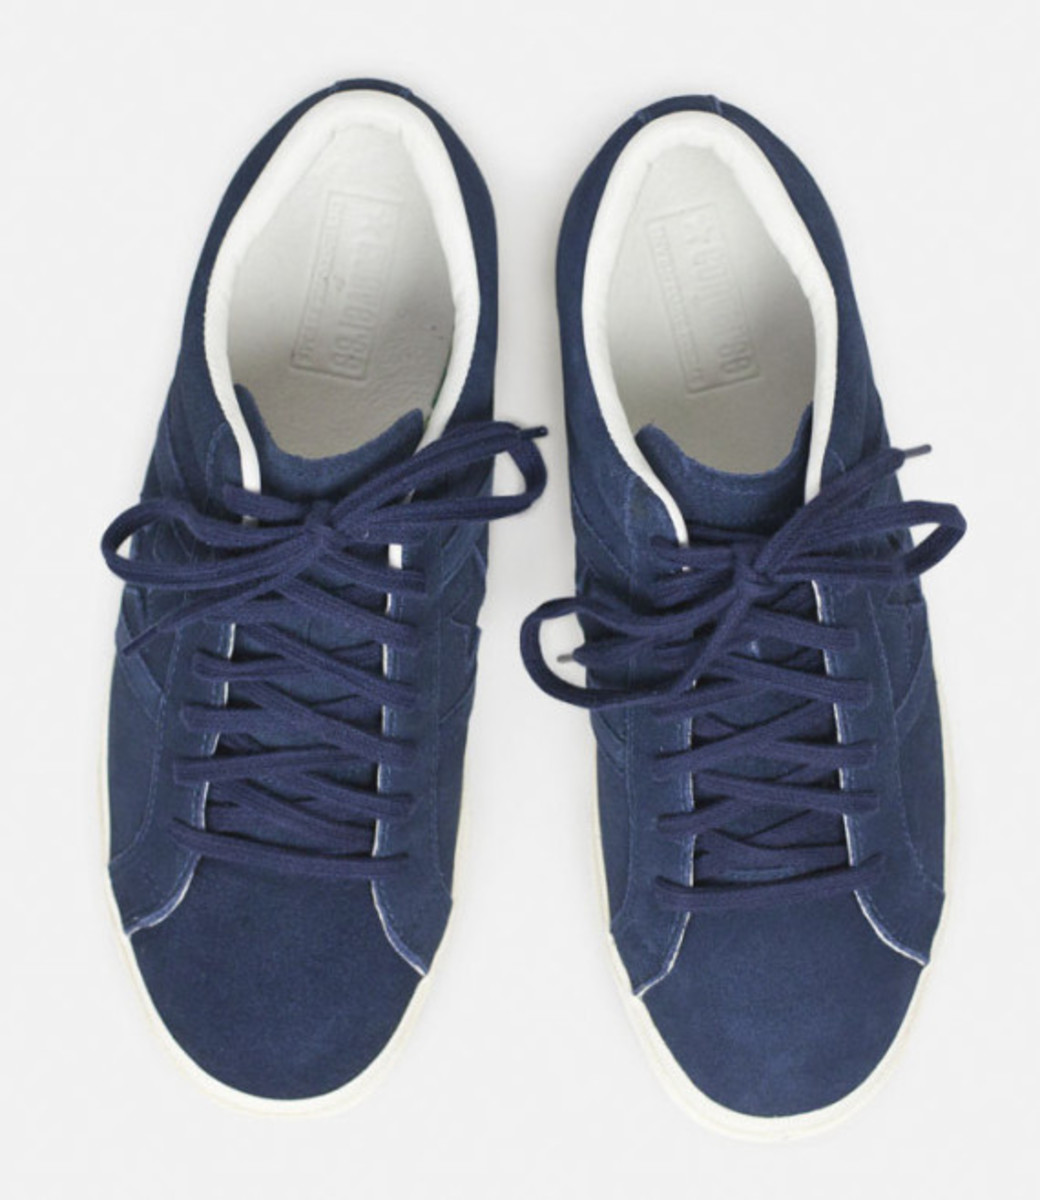 inventory-x-converse-first-string-one-star-academy-athletic-navy-04